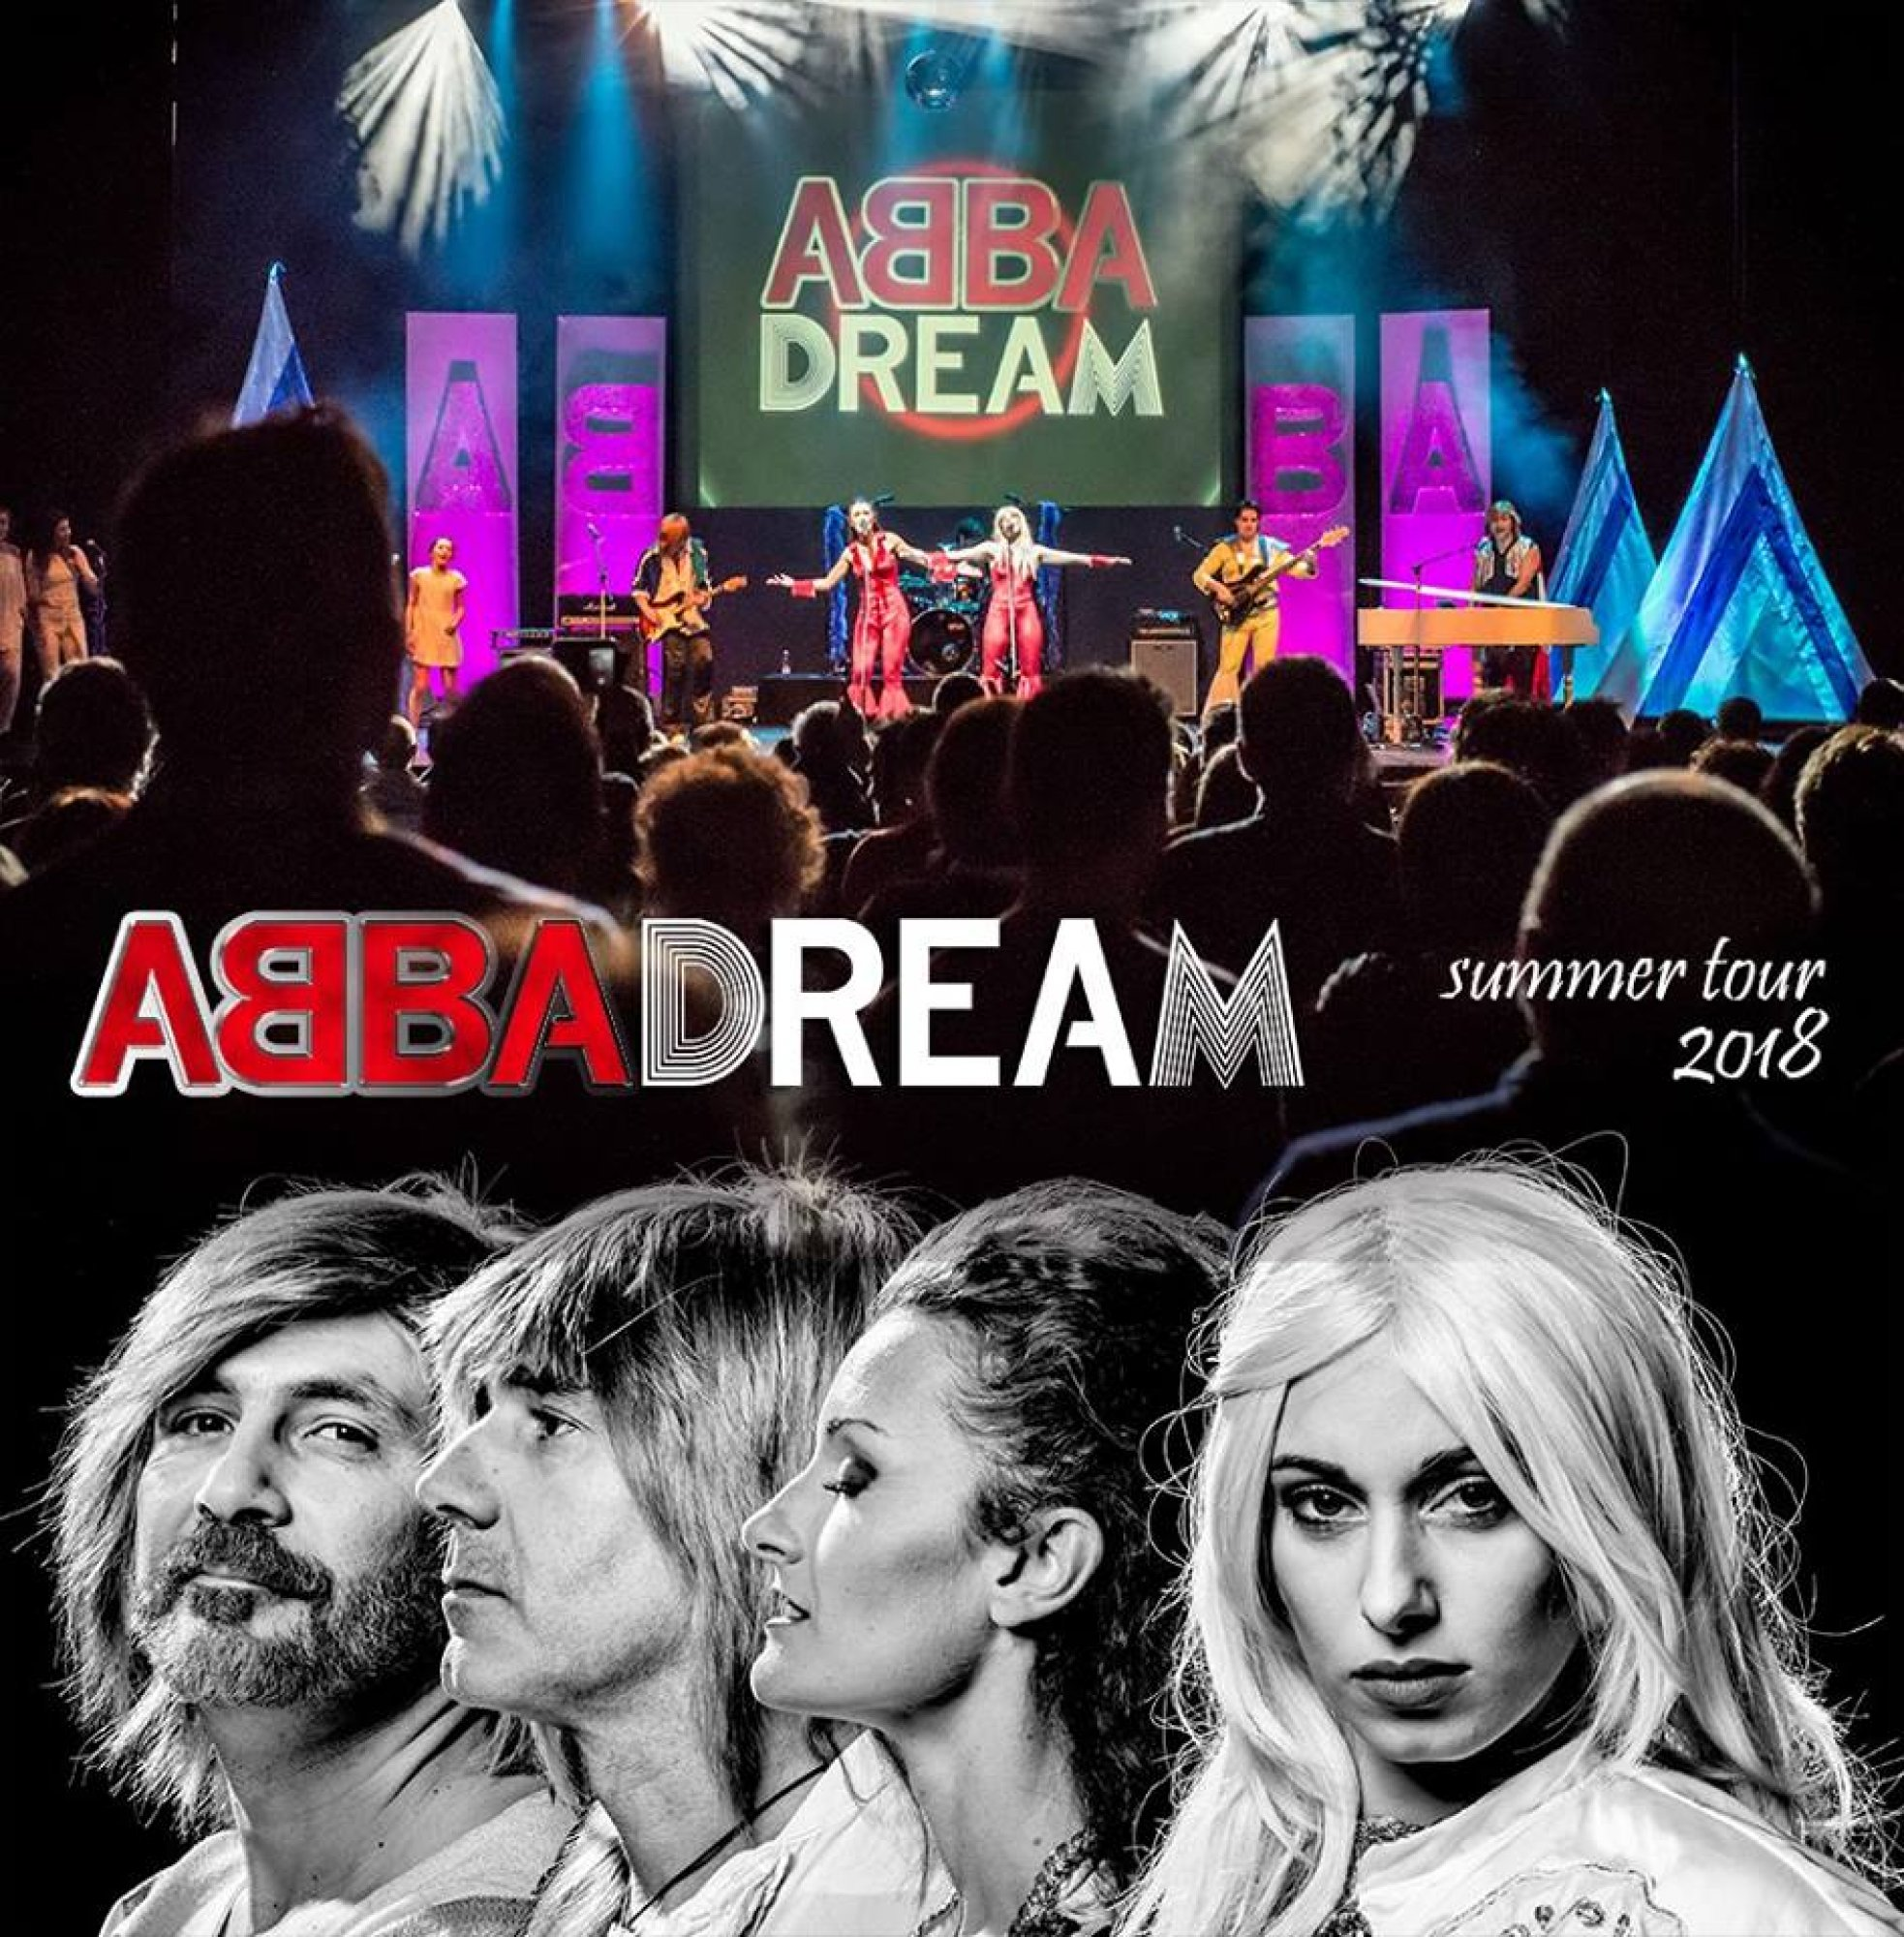 Abba Dream - Summer tour 2018